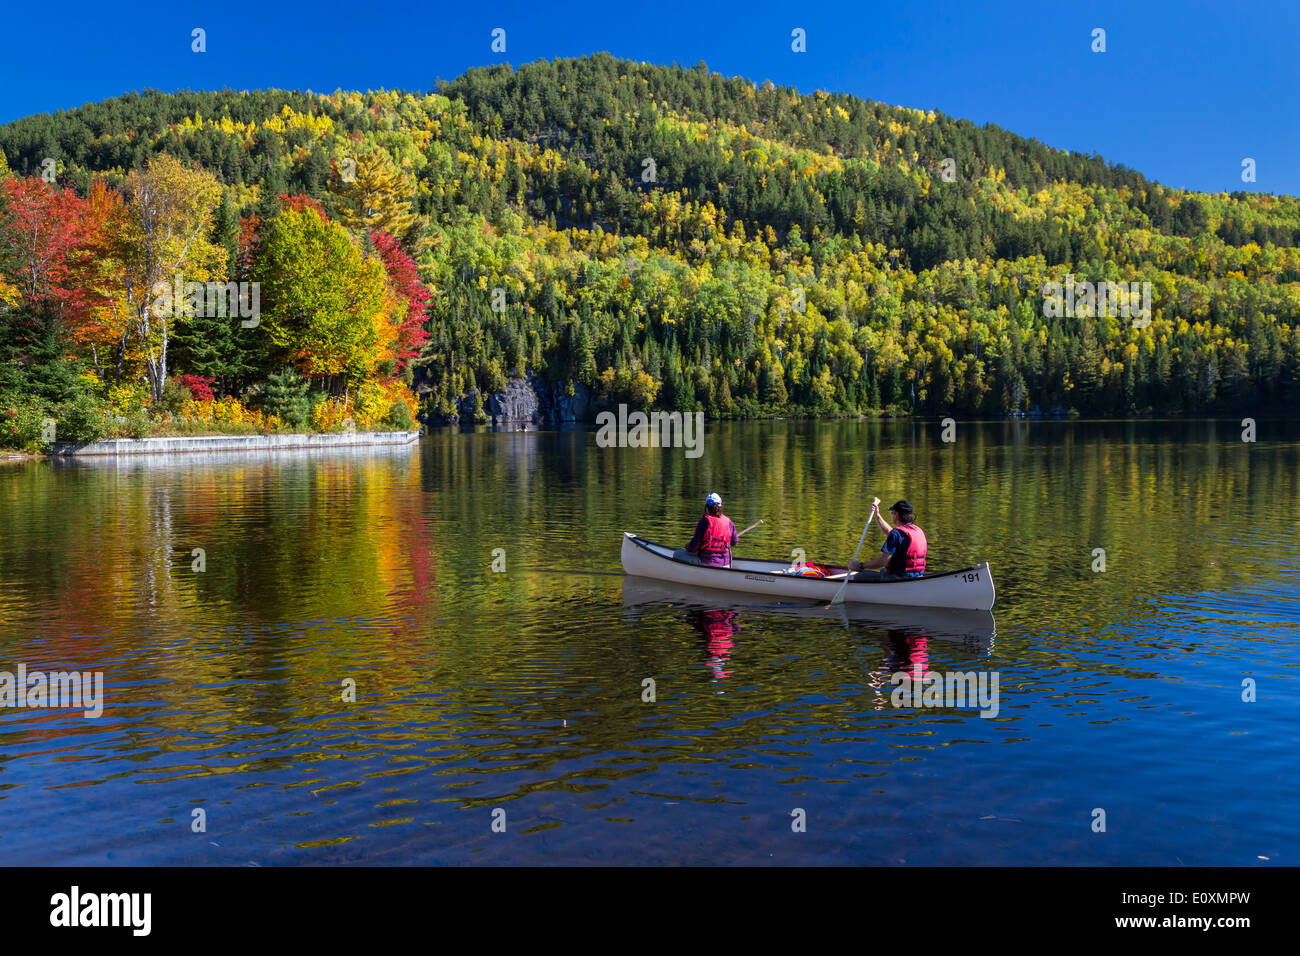 Canoing on a lake with fall foliage color in La Maurice National Park, Quebec, Canada. - Stock Image